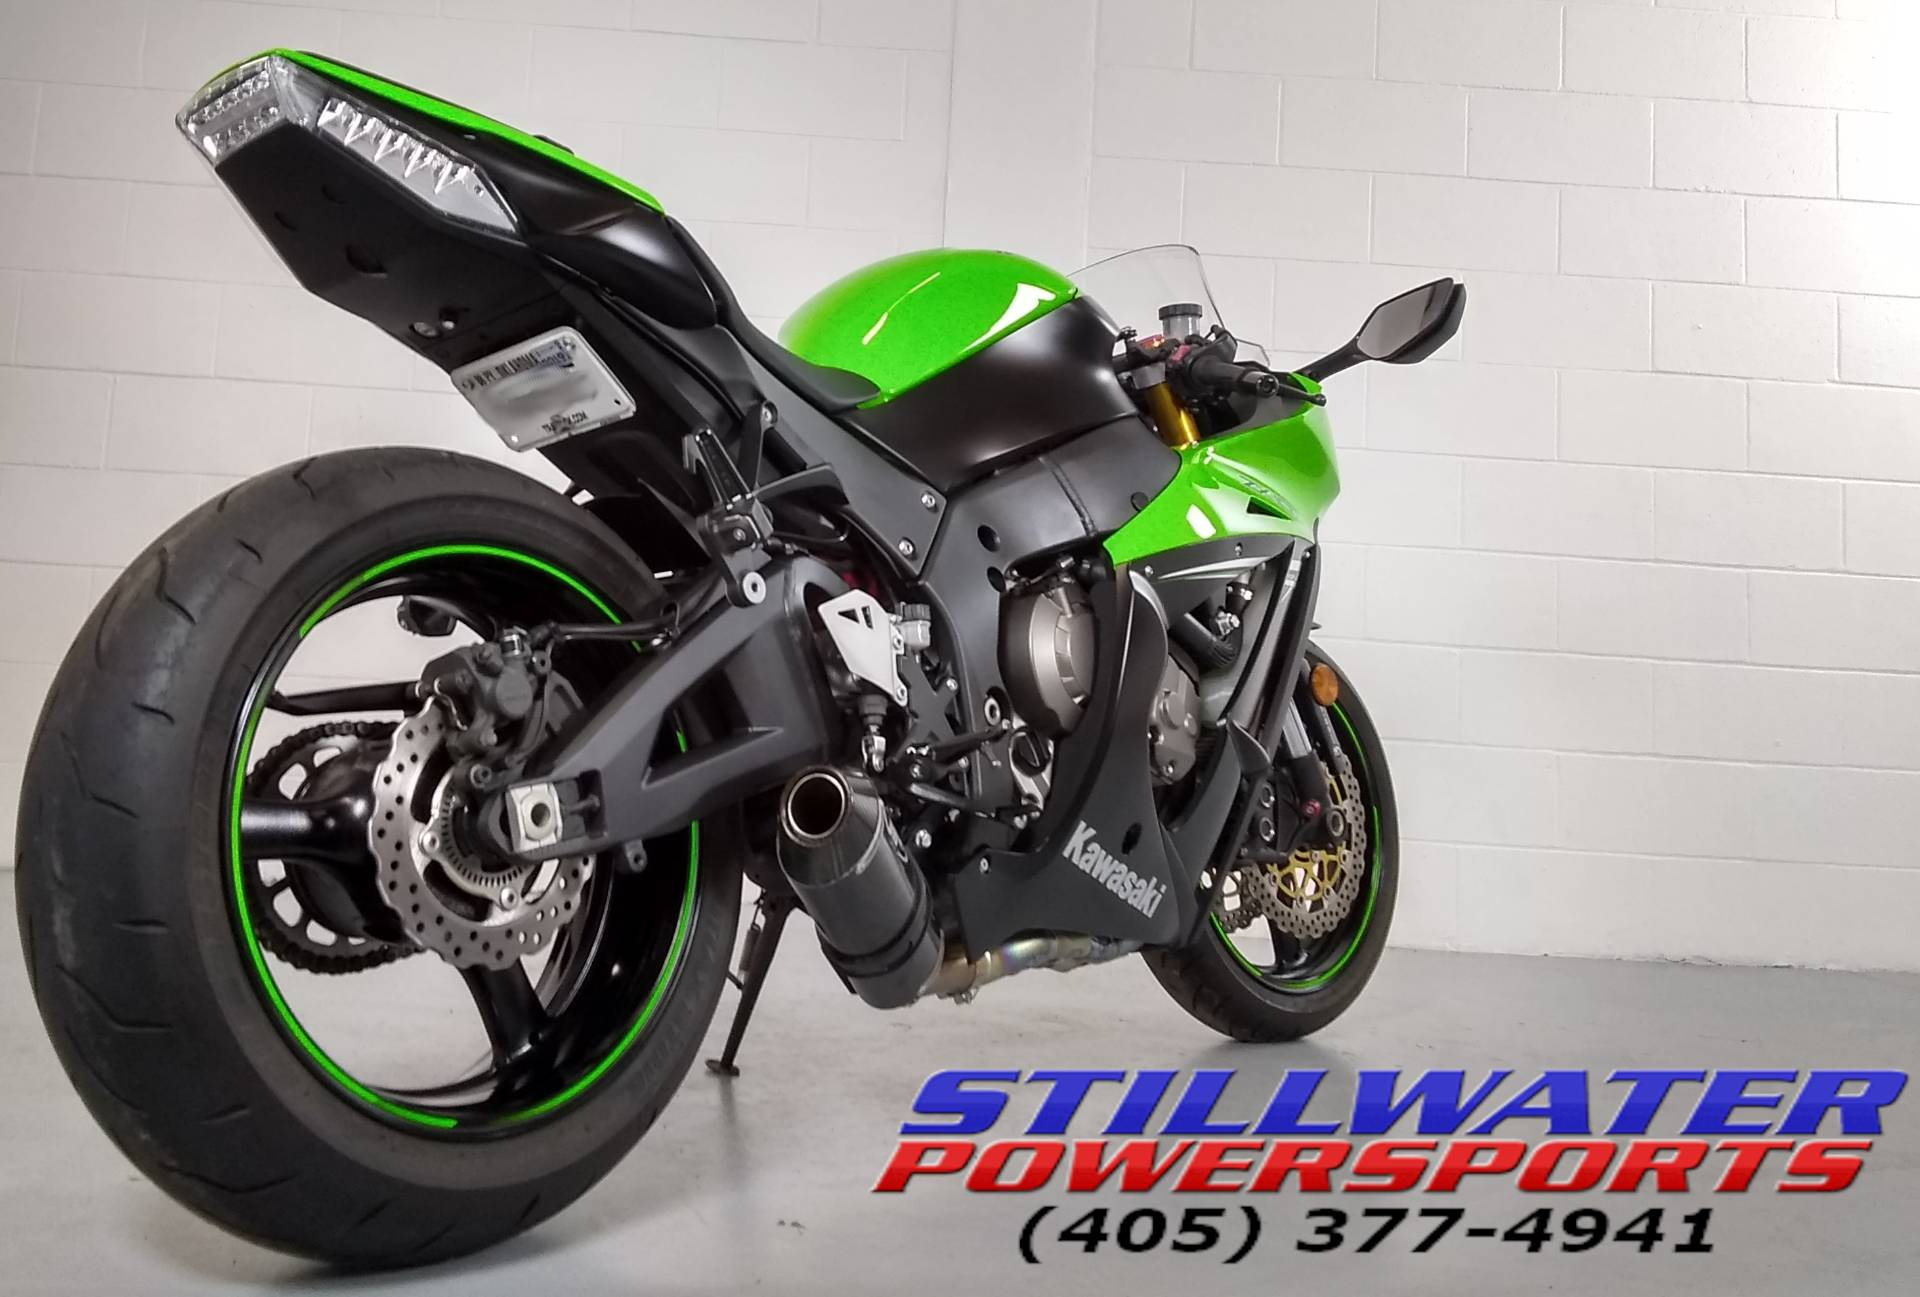 2014 Kawasaki Ninja® ZX™-10R ABS in Stillwater, Oklahoma - Photo 7